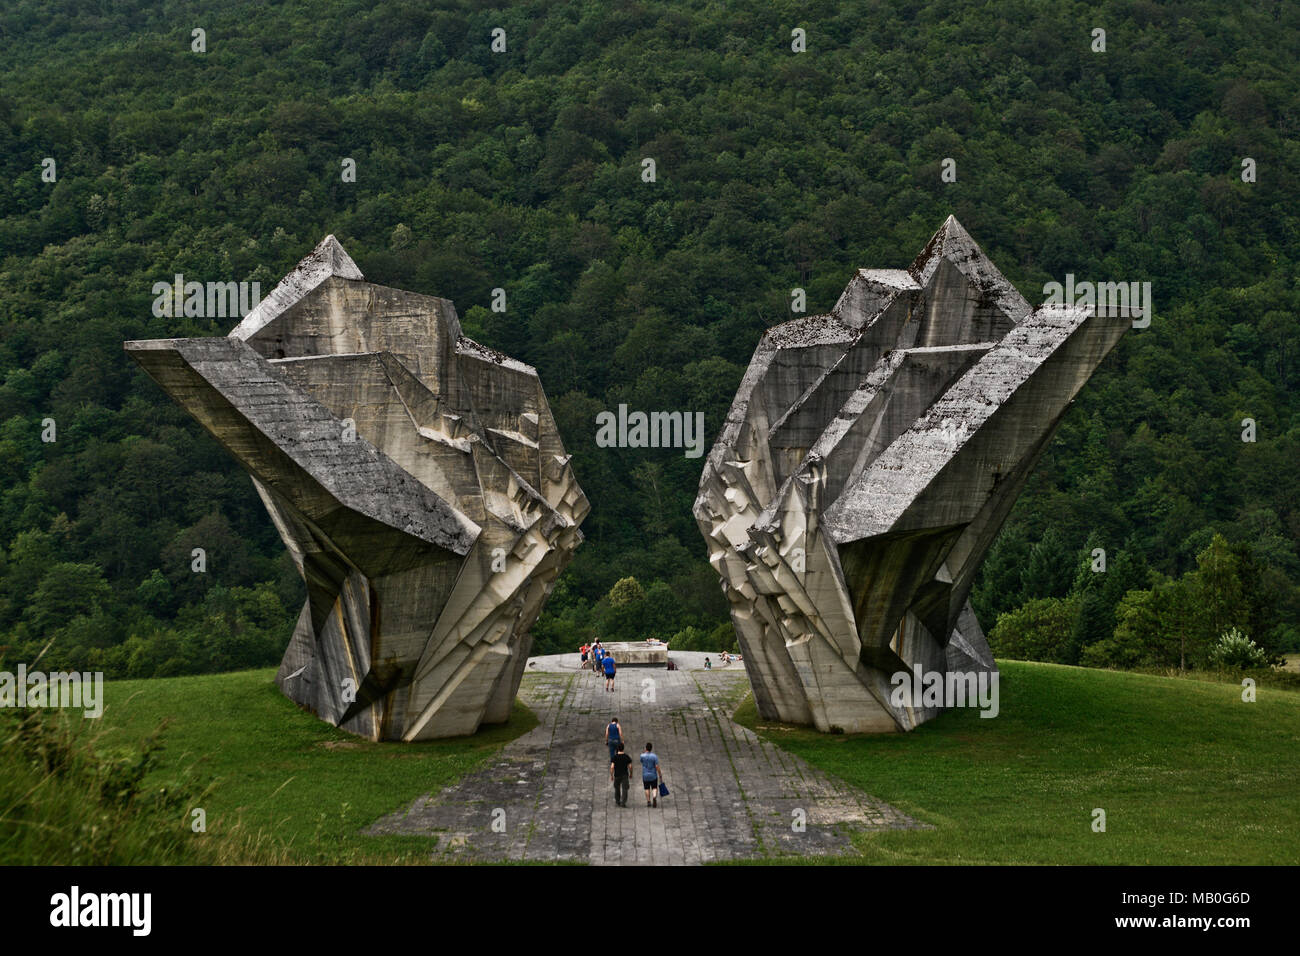 Tjentiste War Memorial, Sutjeska National Park, Bosnia and Herzegovina - Stock Image